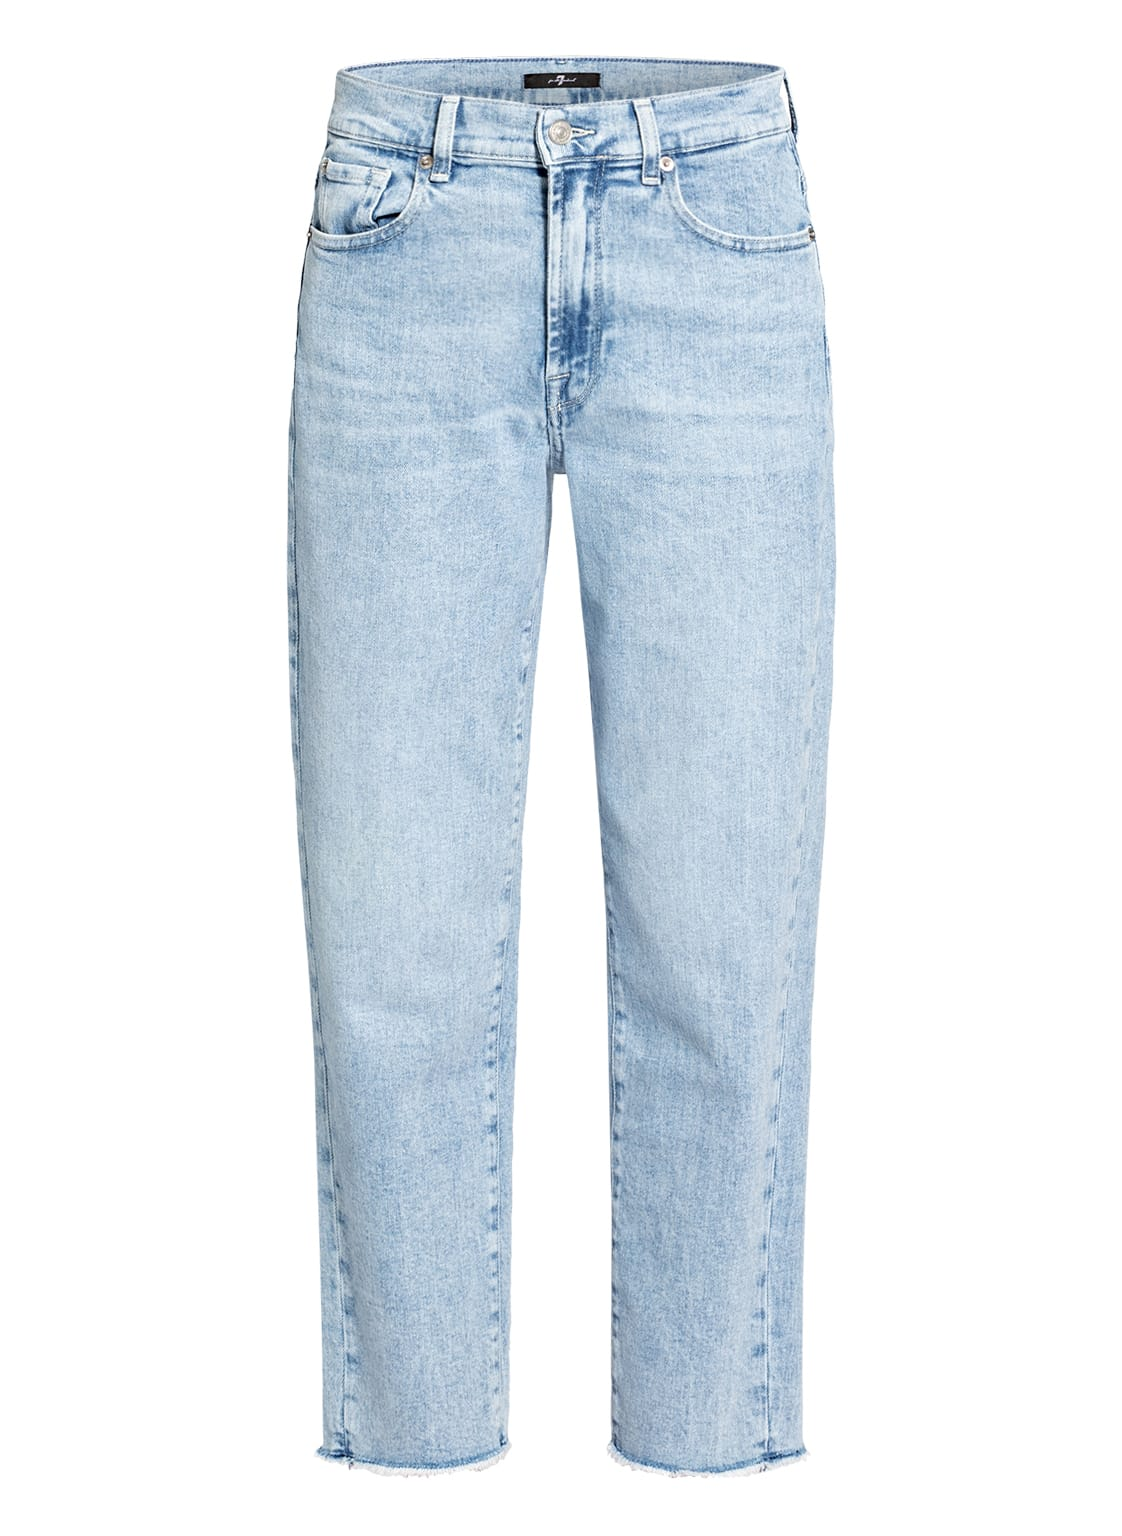 Image of 7 For All Mankind 7/8-Jeans blau